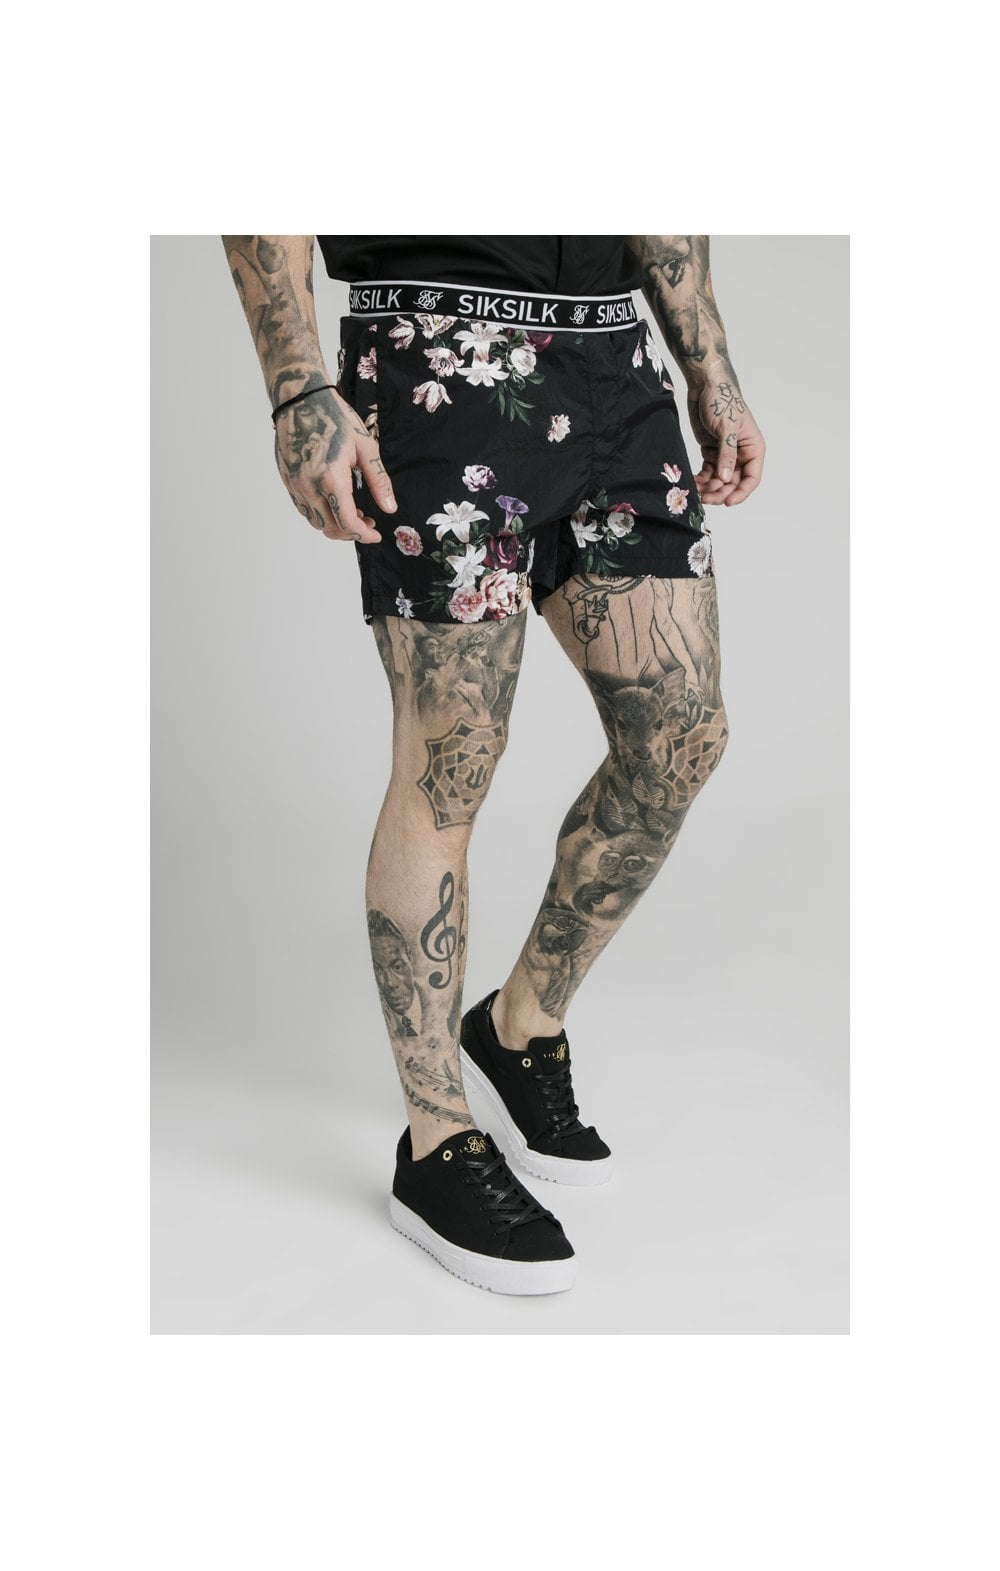 SikSilk Prestige Floral Swim Shorts - Black (3)